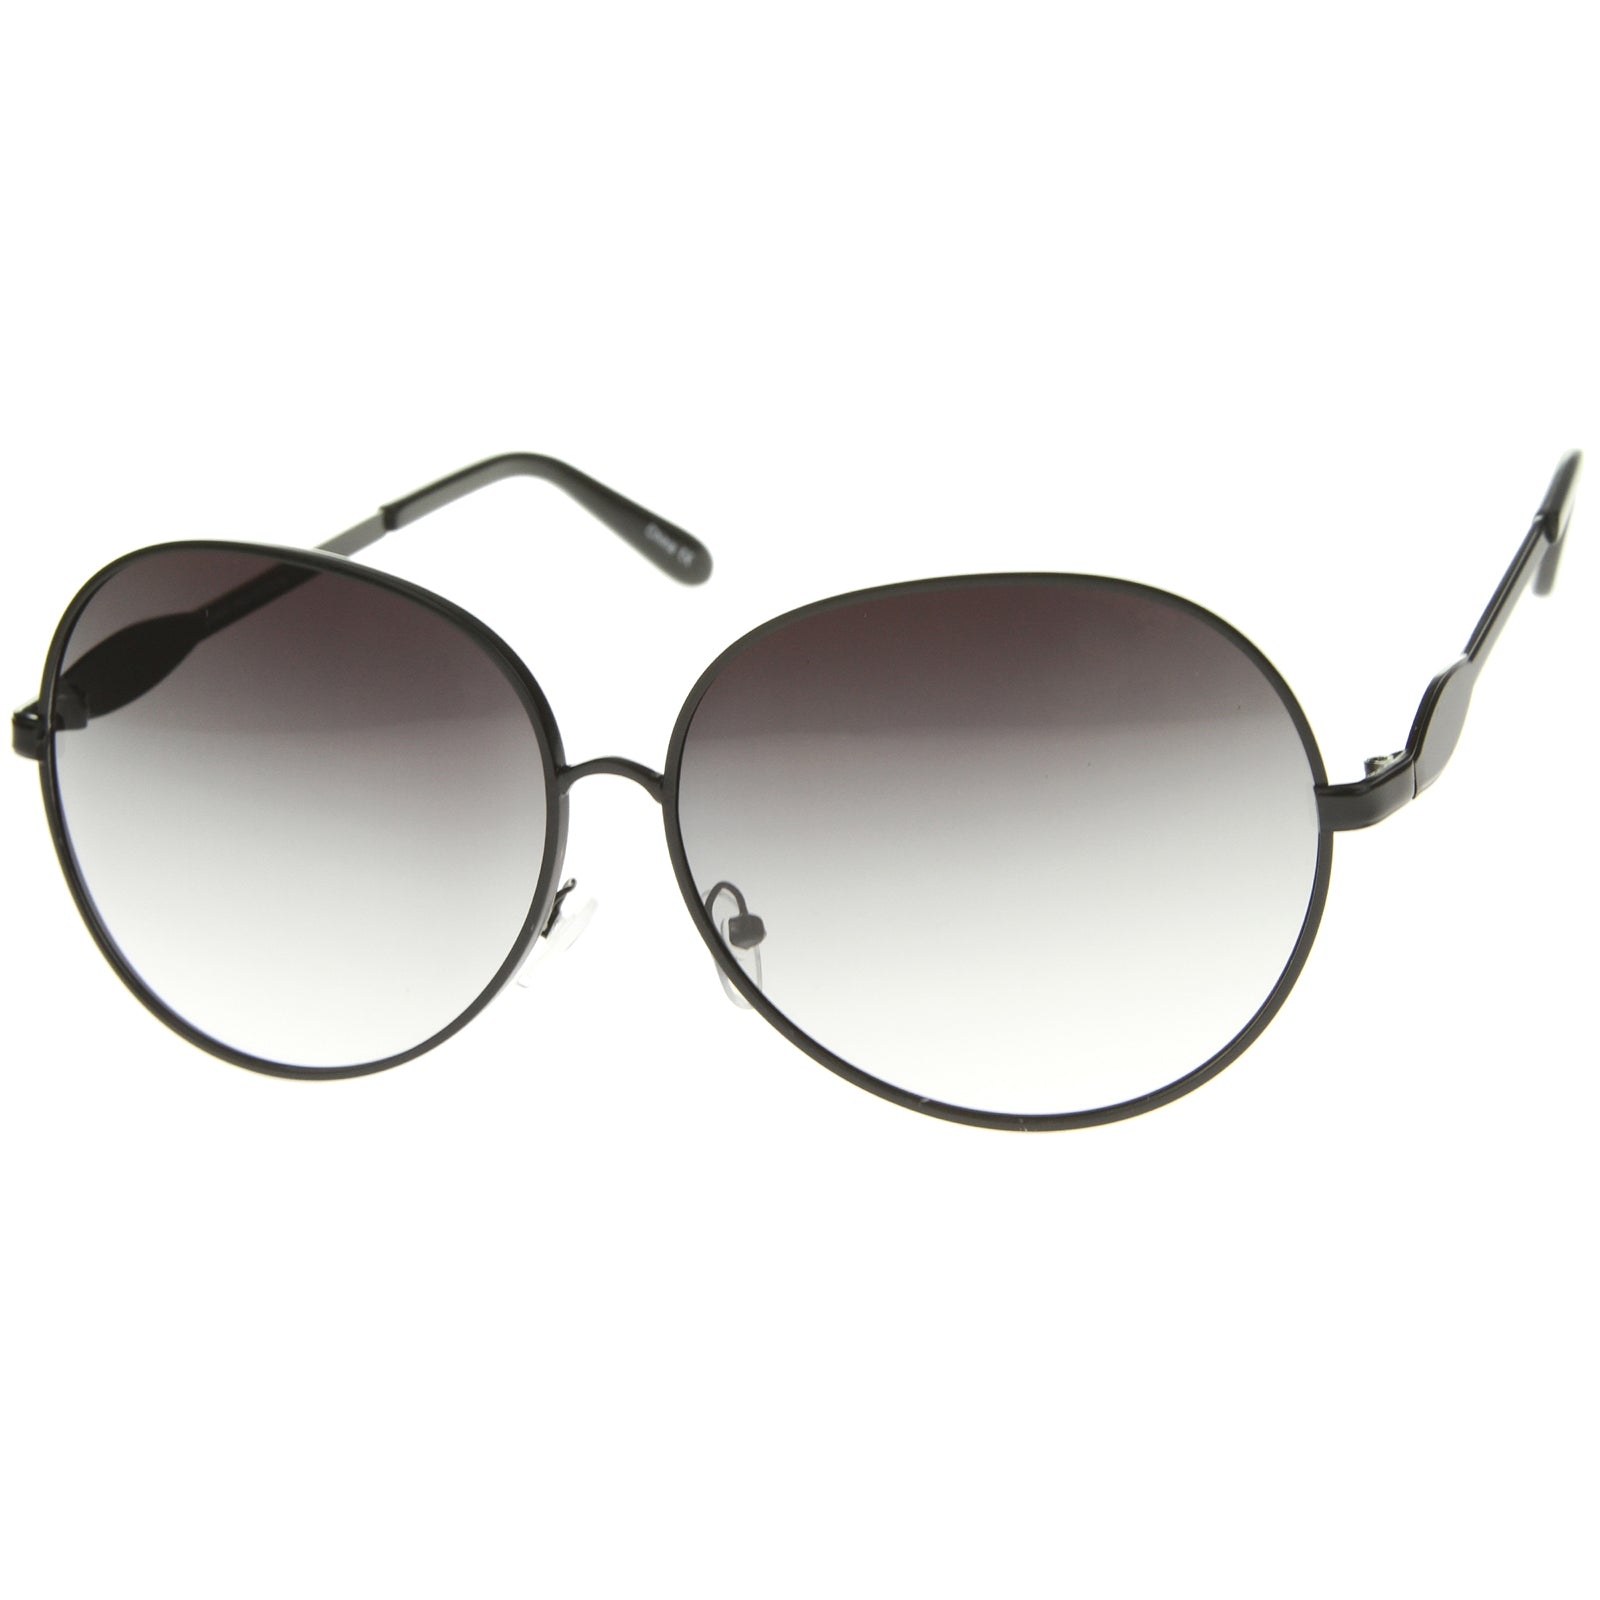 Womens Glam Full Metal Frame Oversized Round Sunglasses 63mm - sunglass.la - 2